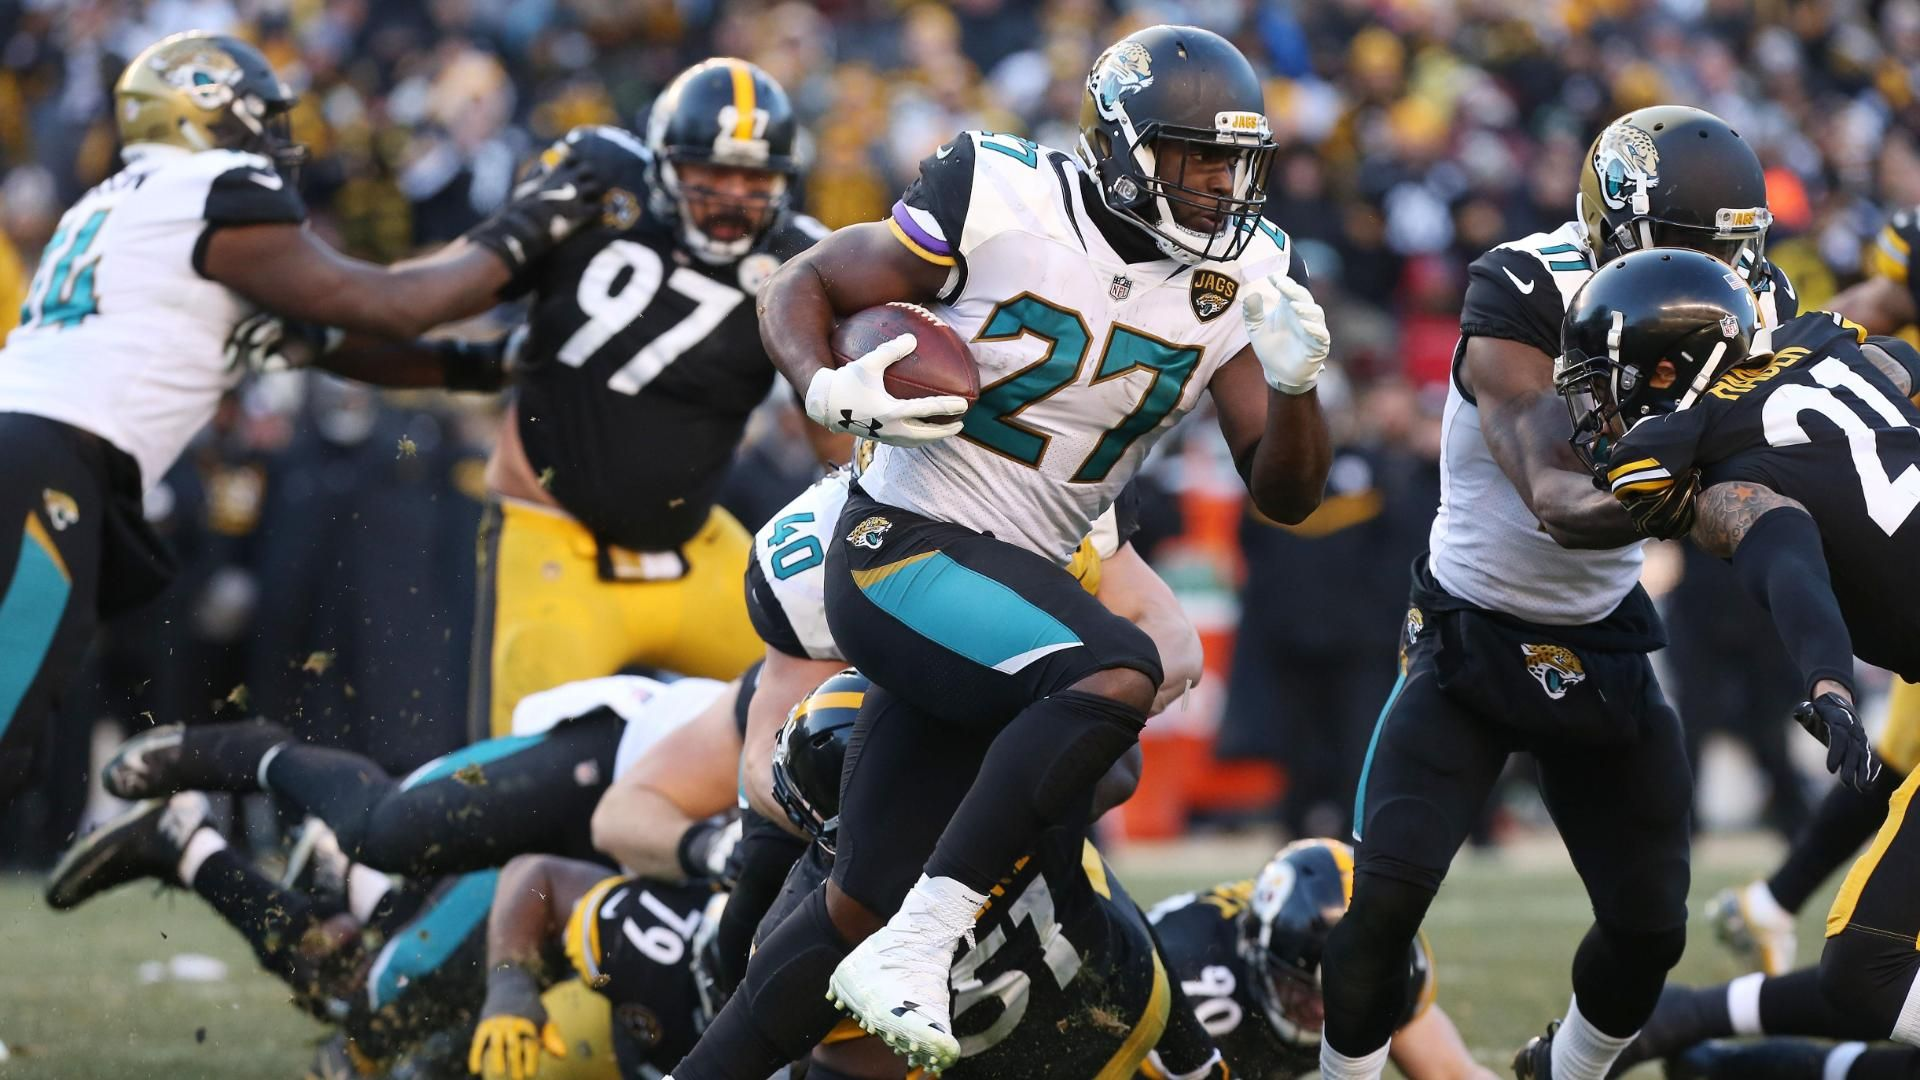 Fournette's three TDs lead Jags to upset win in Pittsburgh